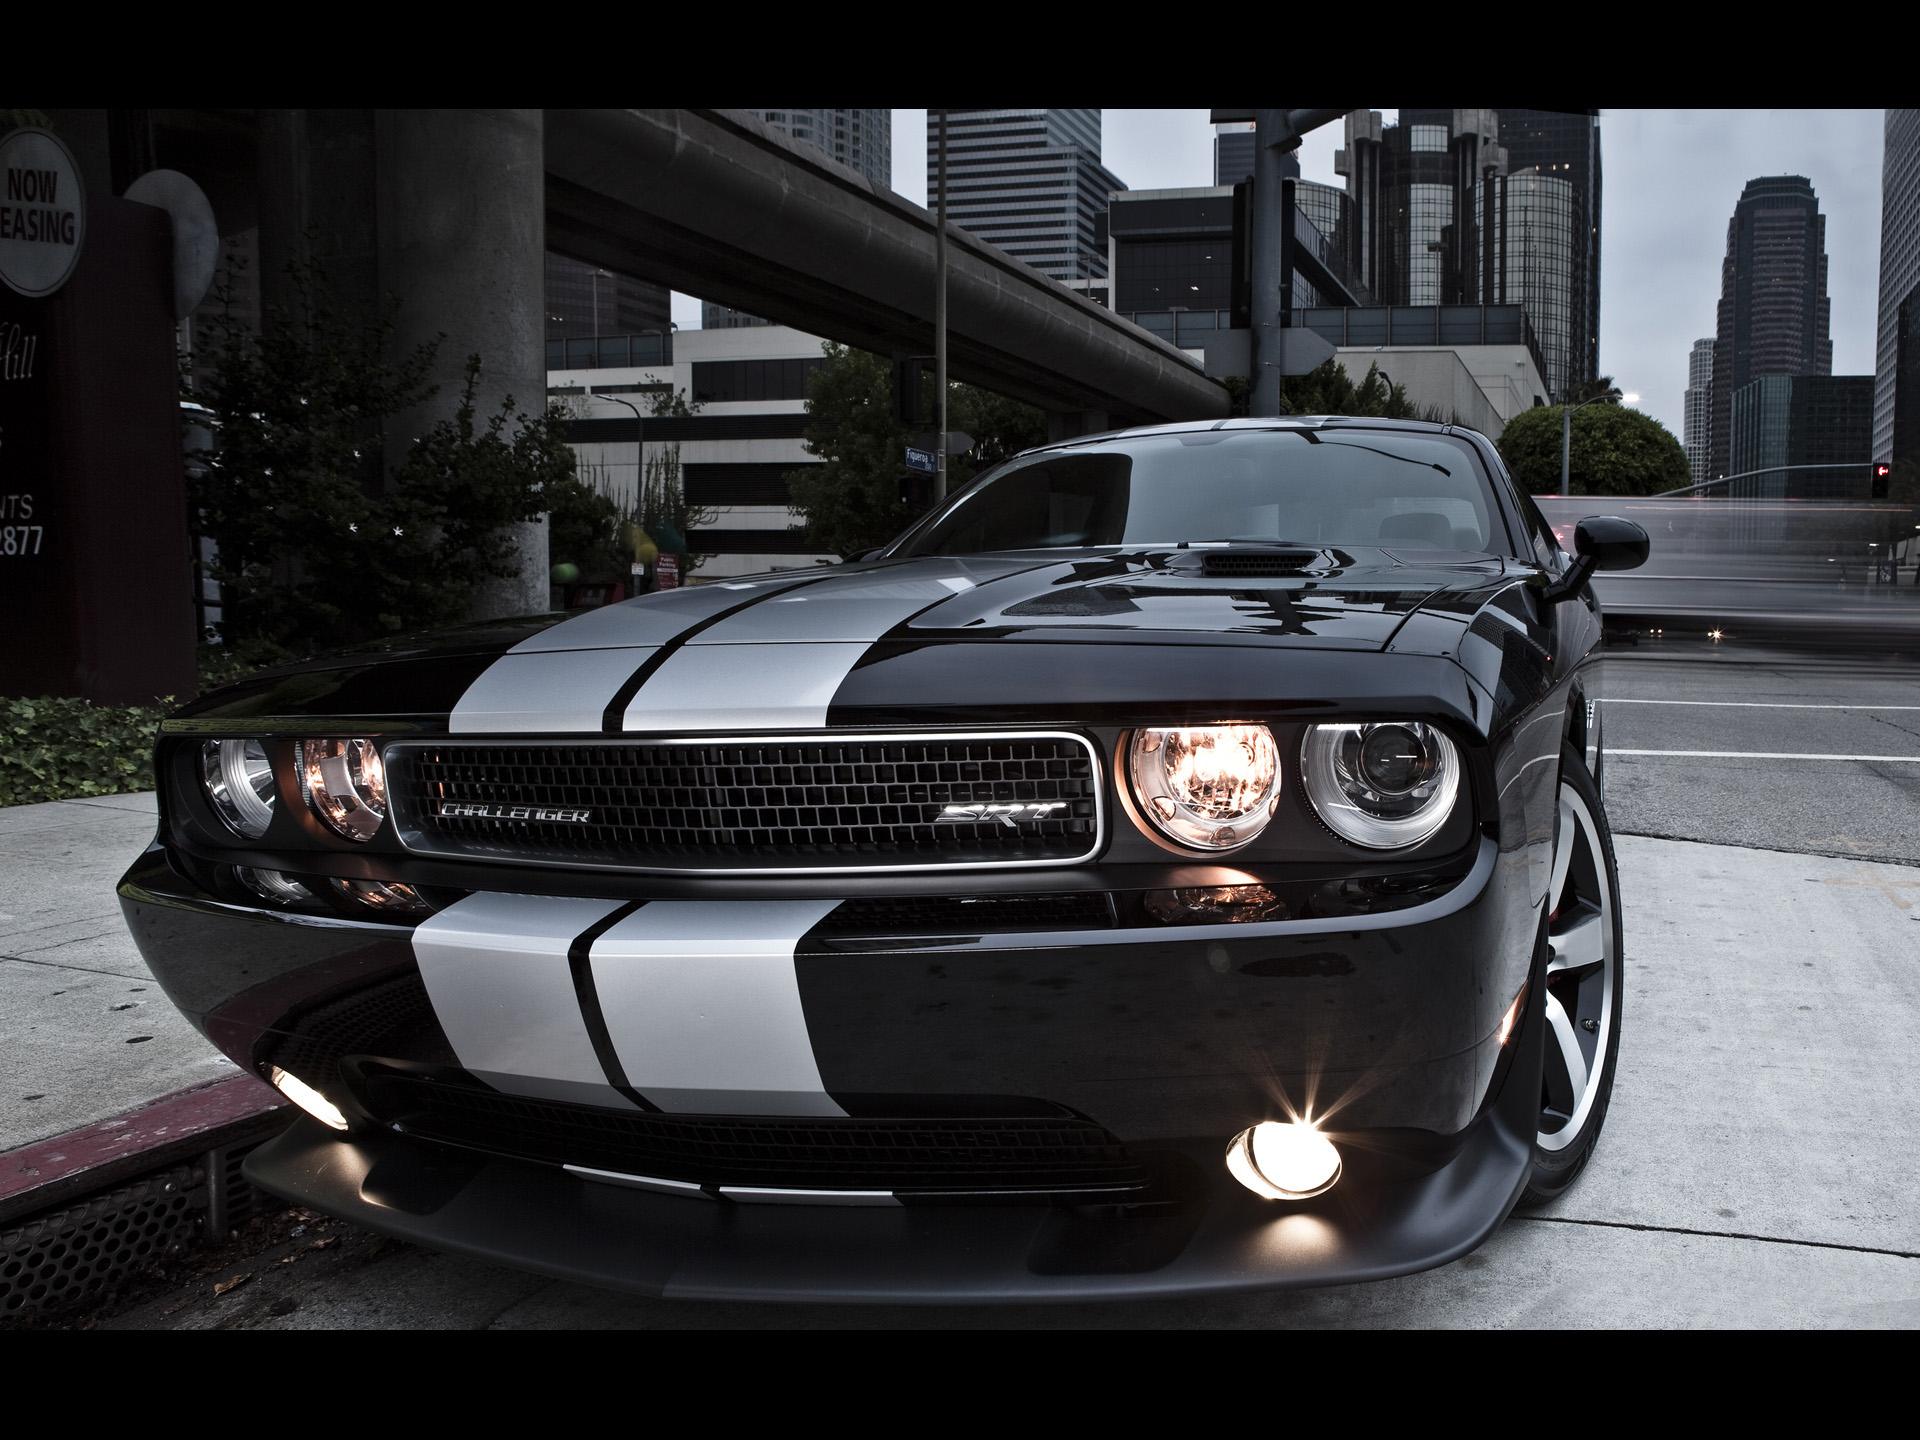 dodge challenger srt8 wallpaper hd image   Automotive Zone 1920x1440